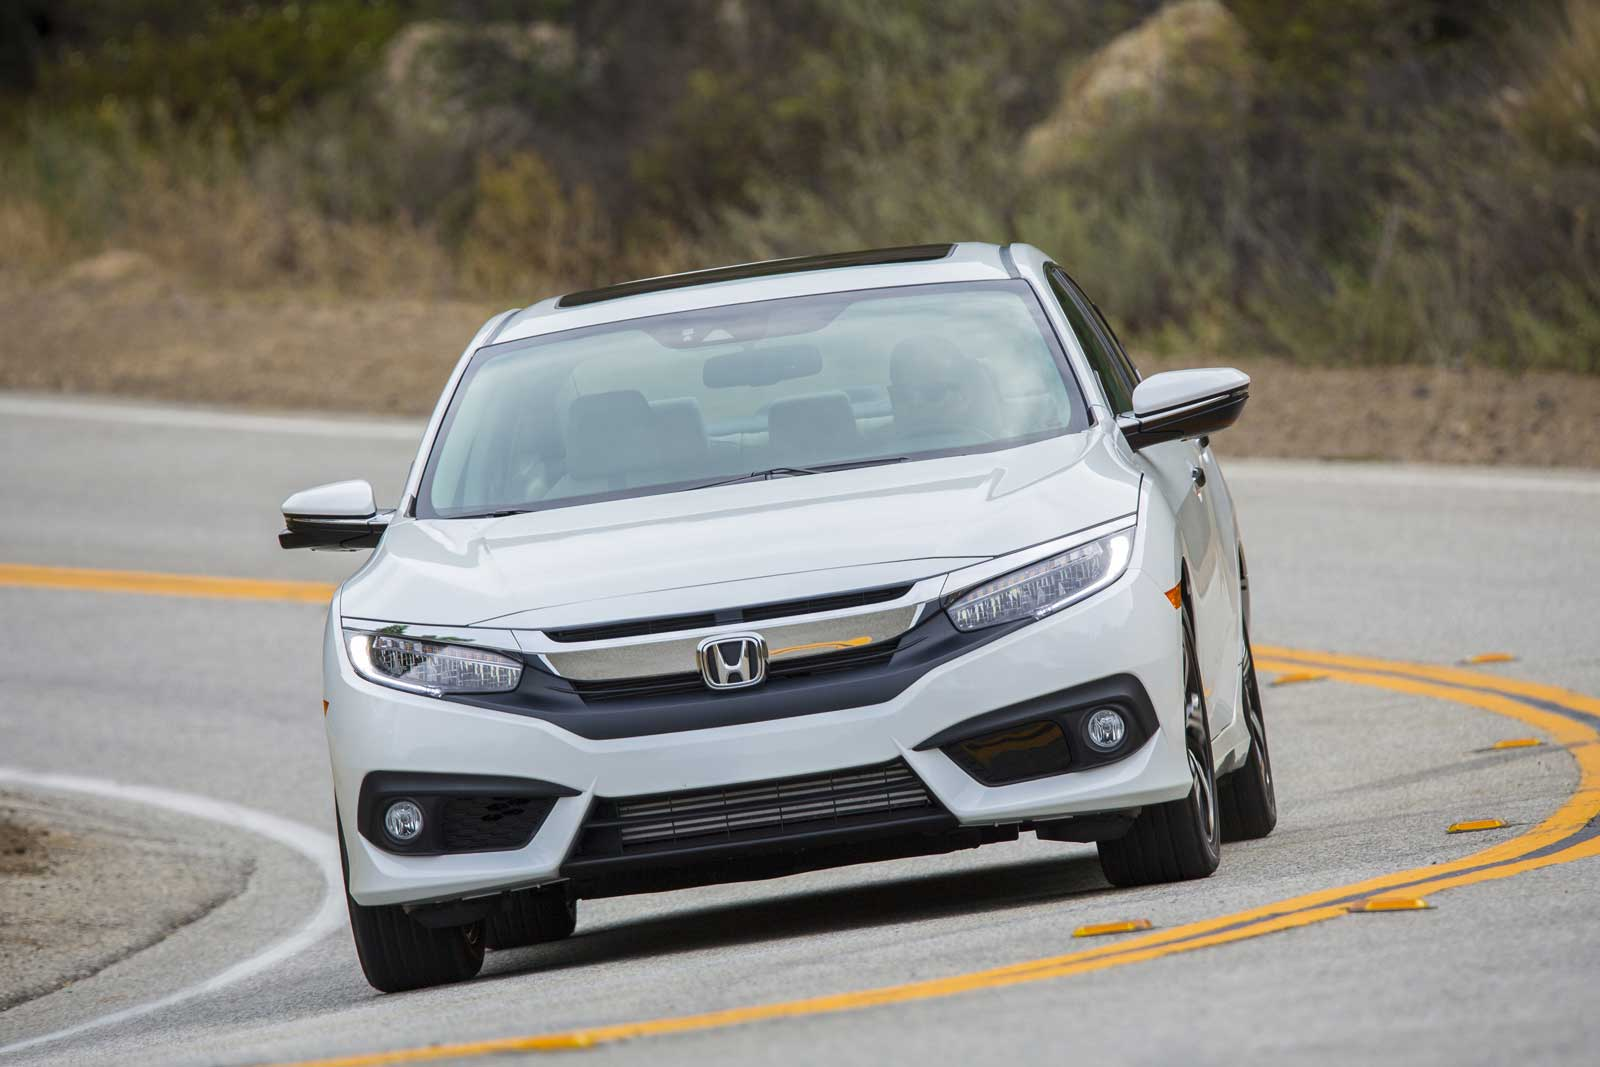 2016-Honda-Civic-Driving-10